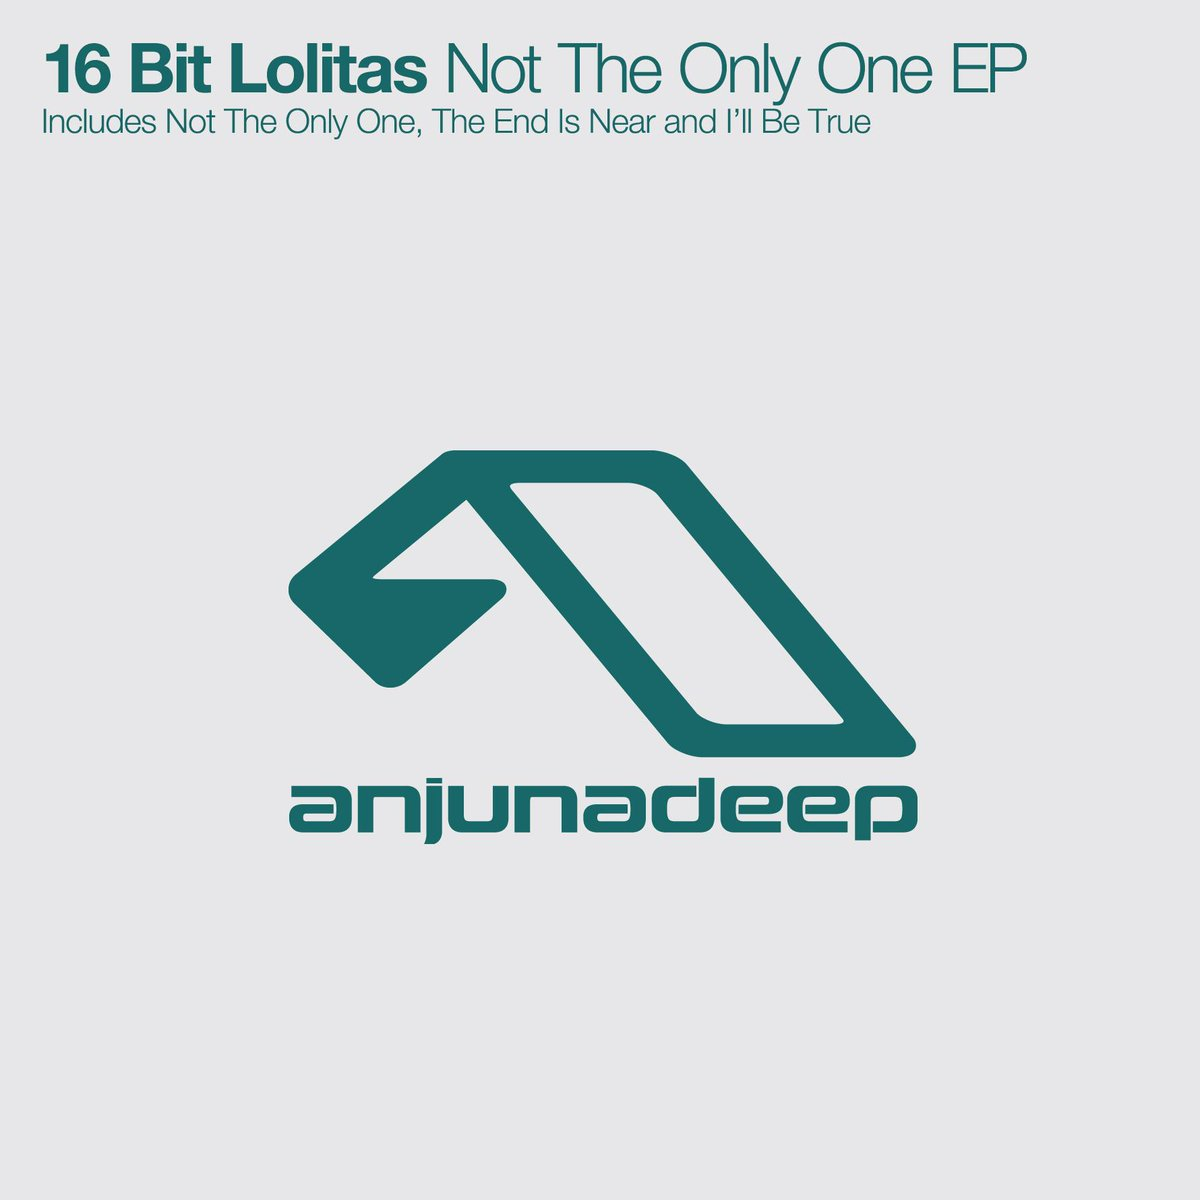 New EP coming up in one week on @Anjunadeep :) http://t.co/bcIkZwqOwY